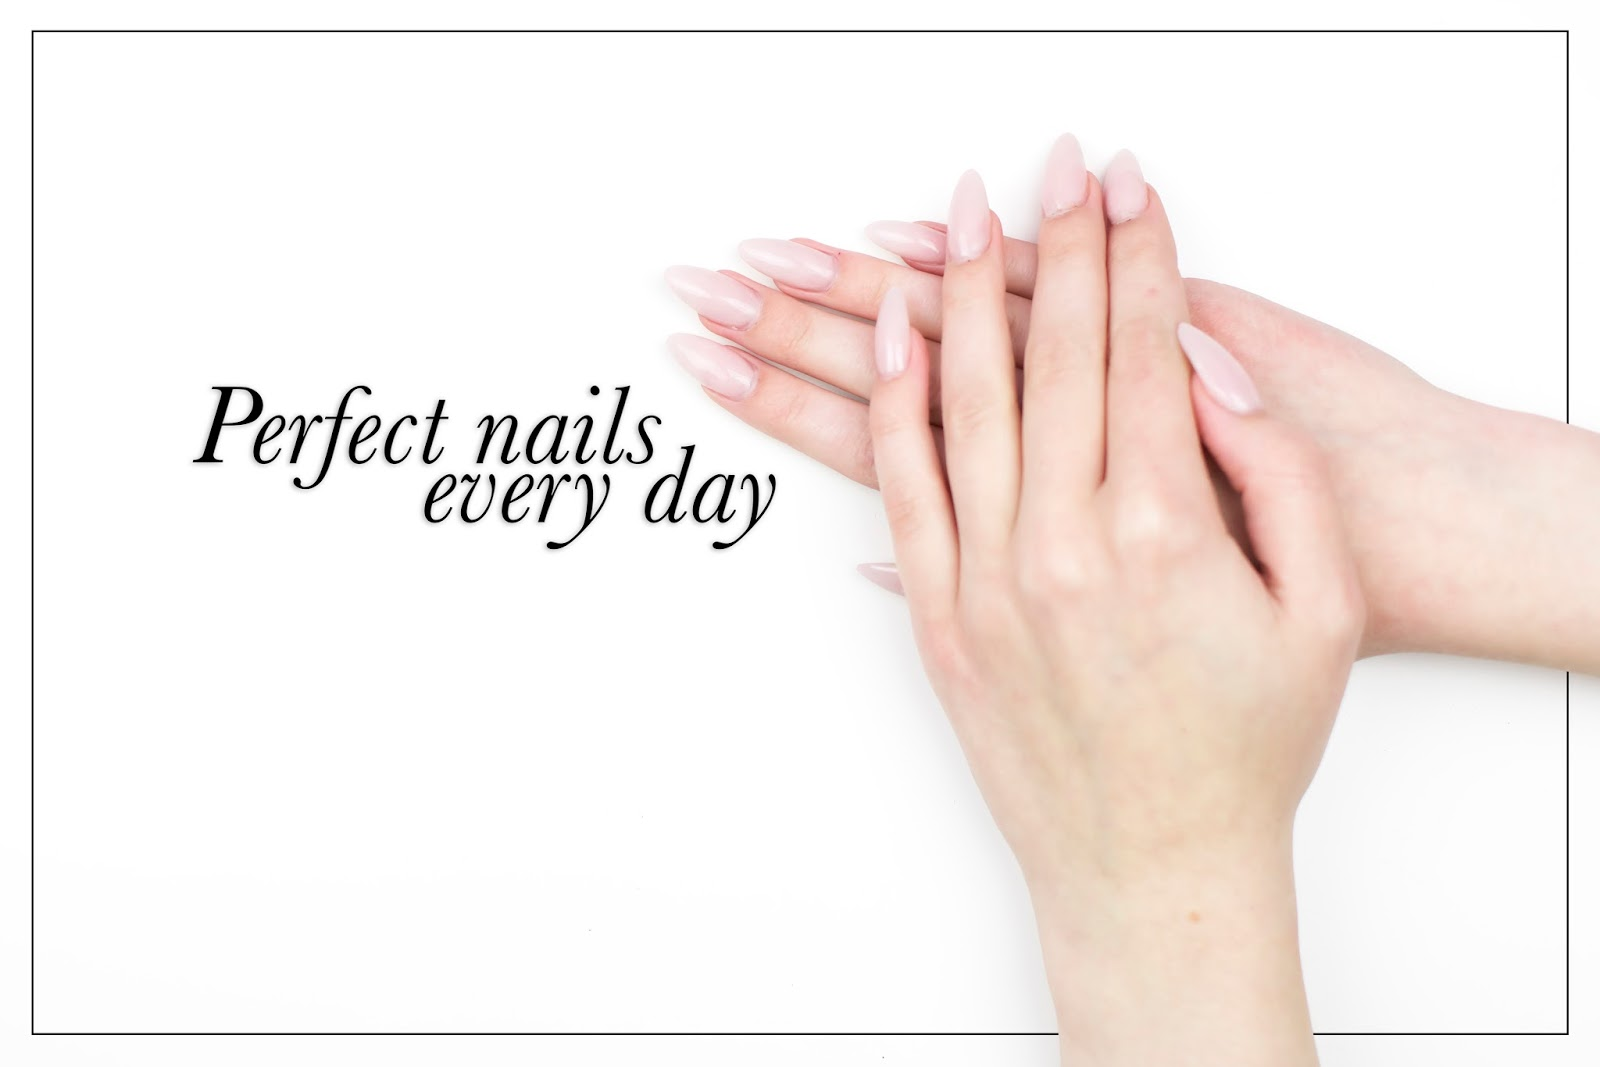 Perfect nails every day